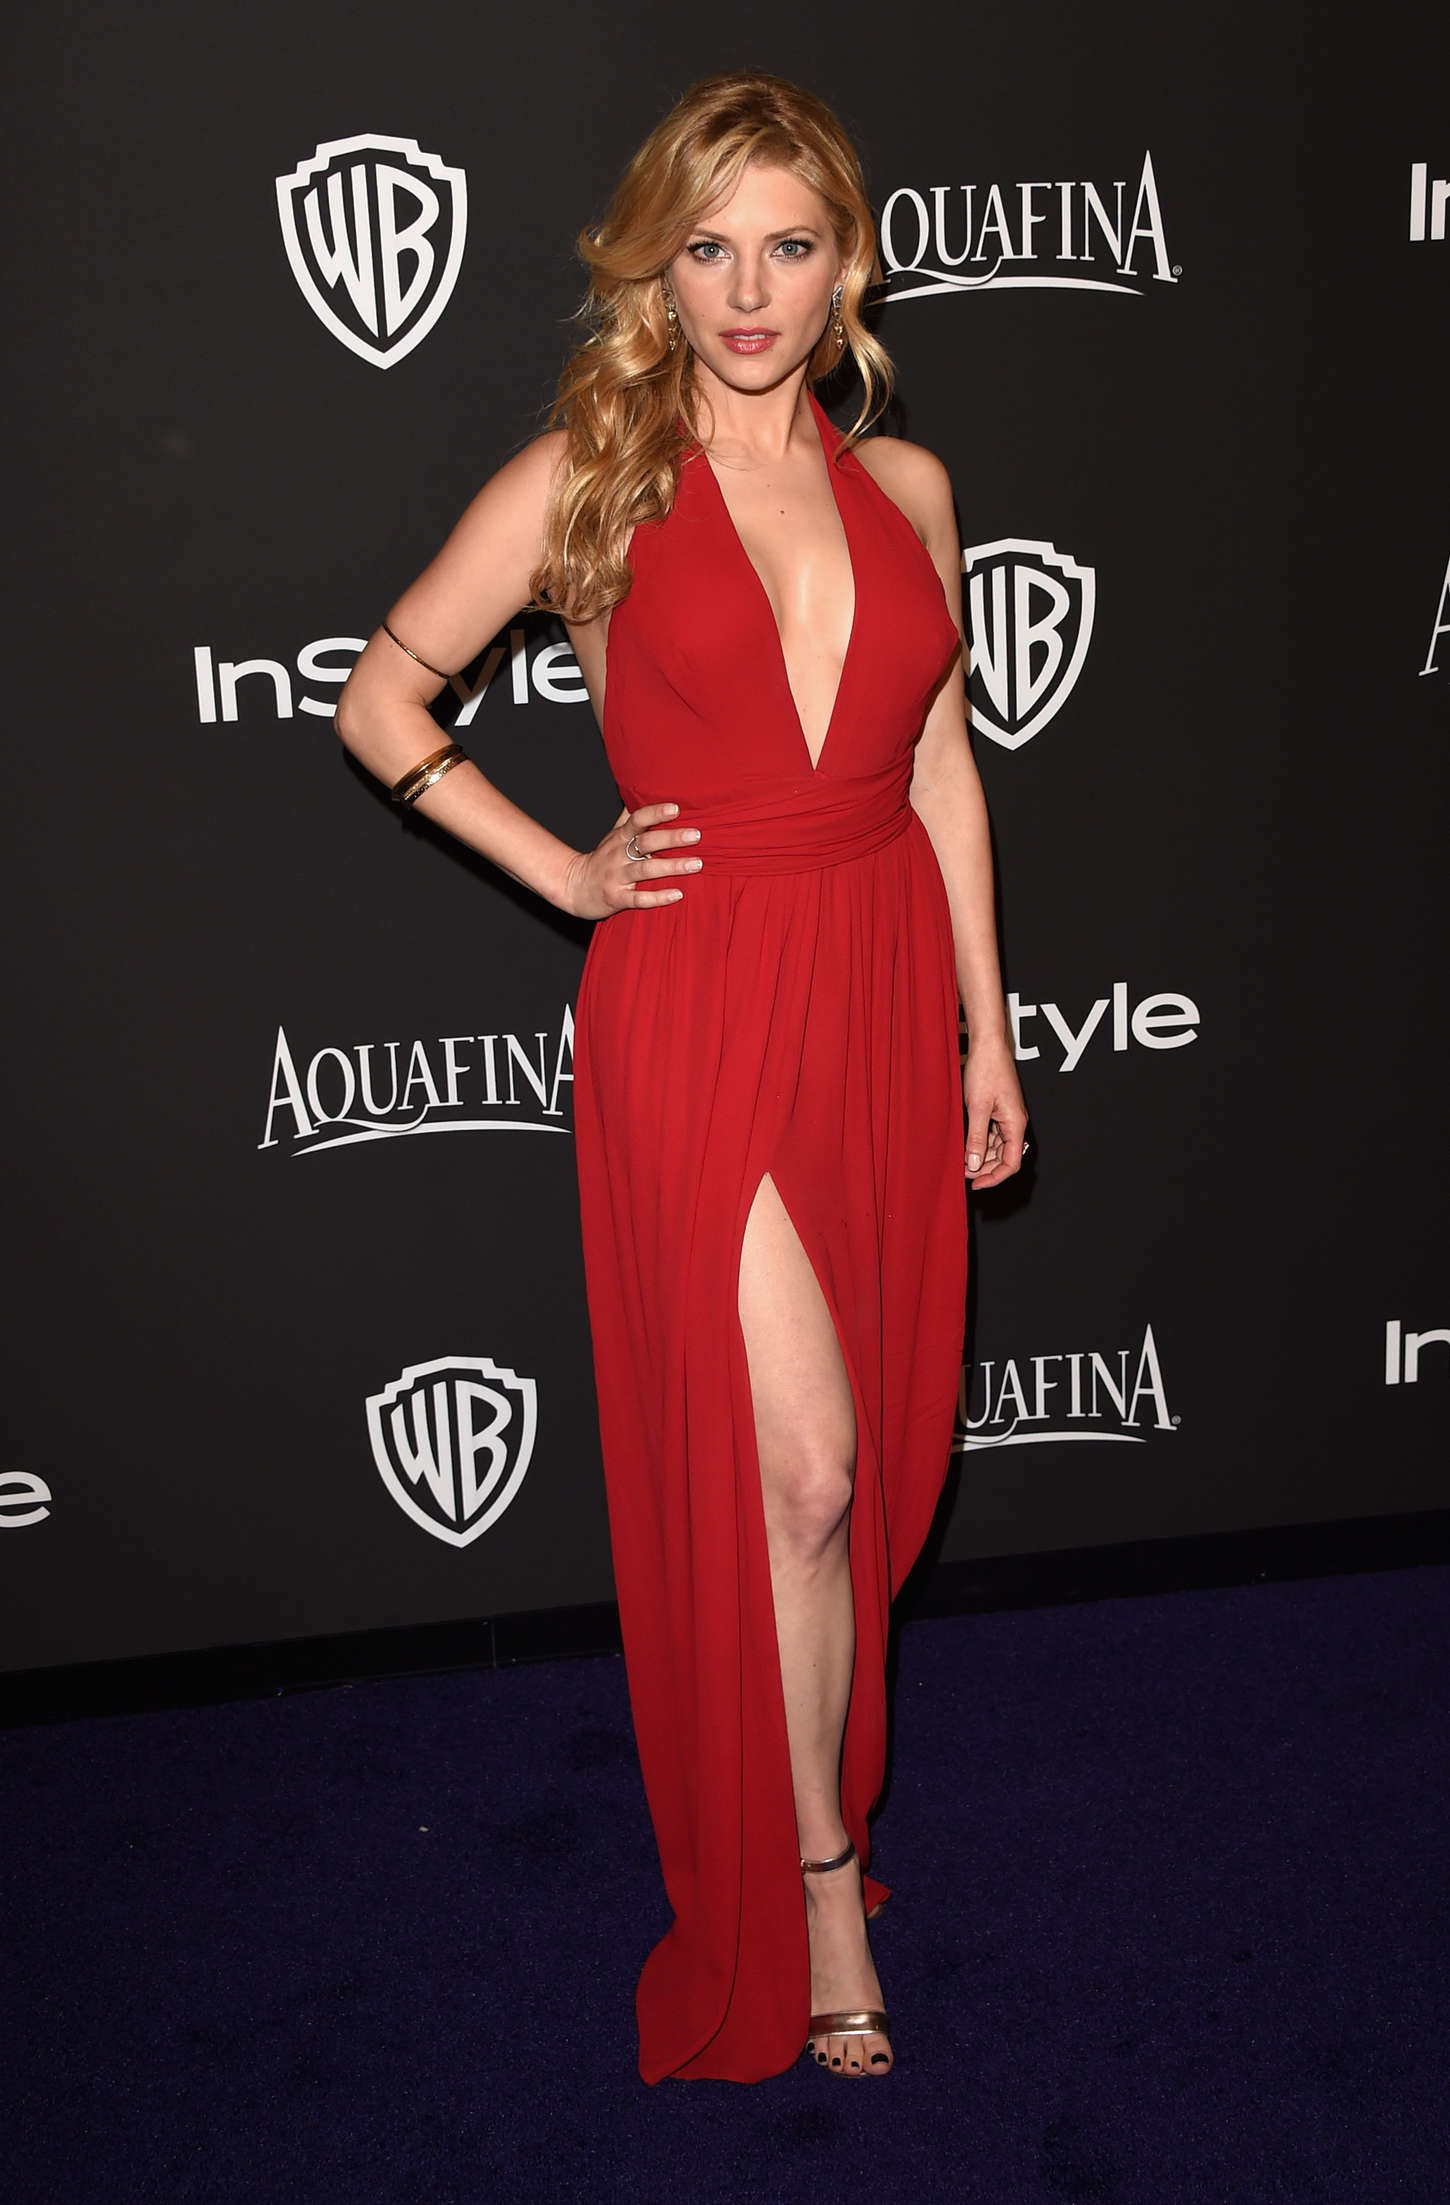 Katheryn Winnick Nude - 1 Pictures: Rating 8.68/10